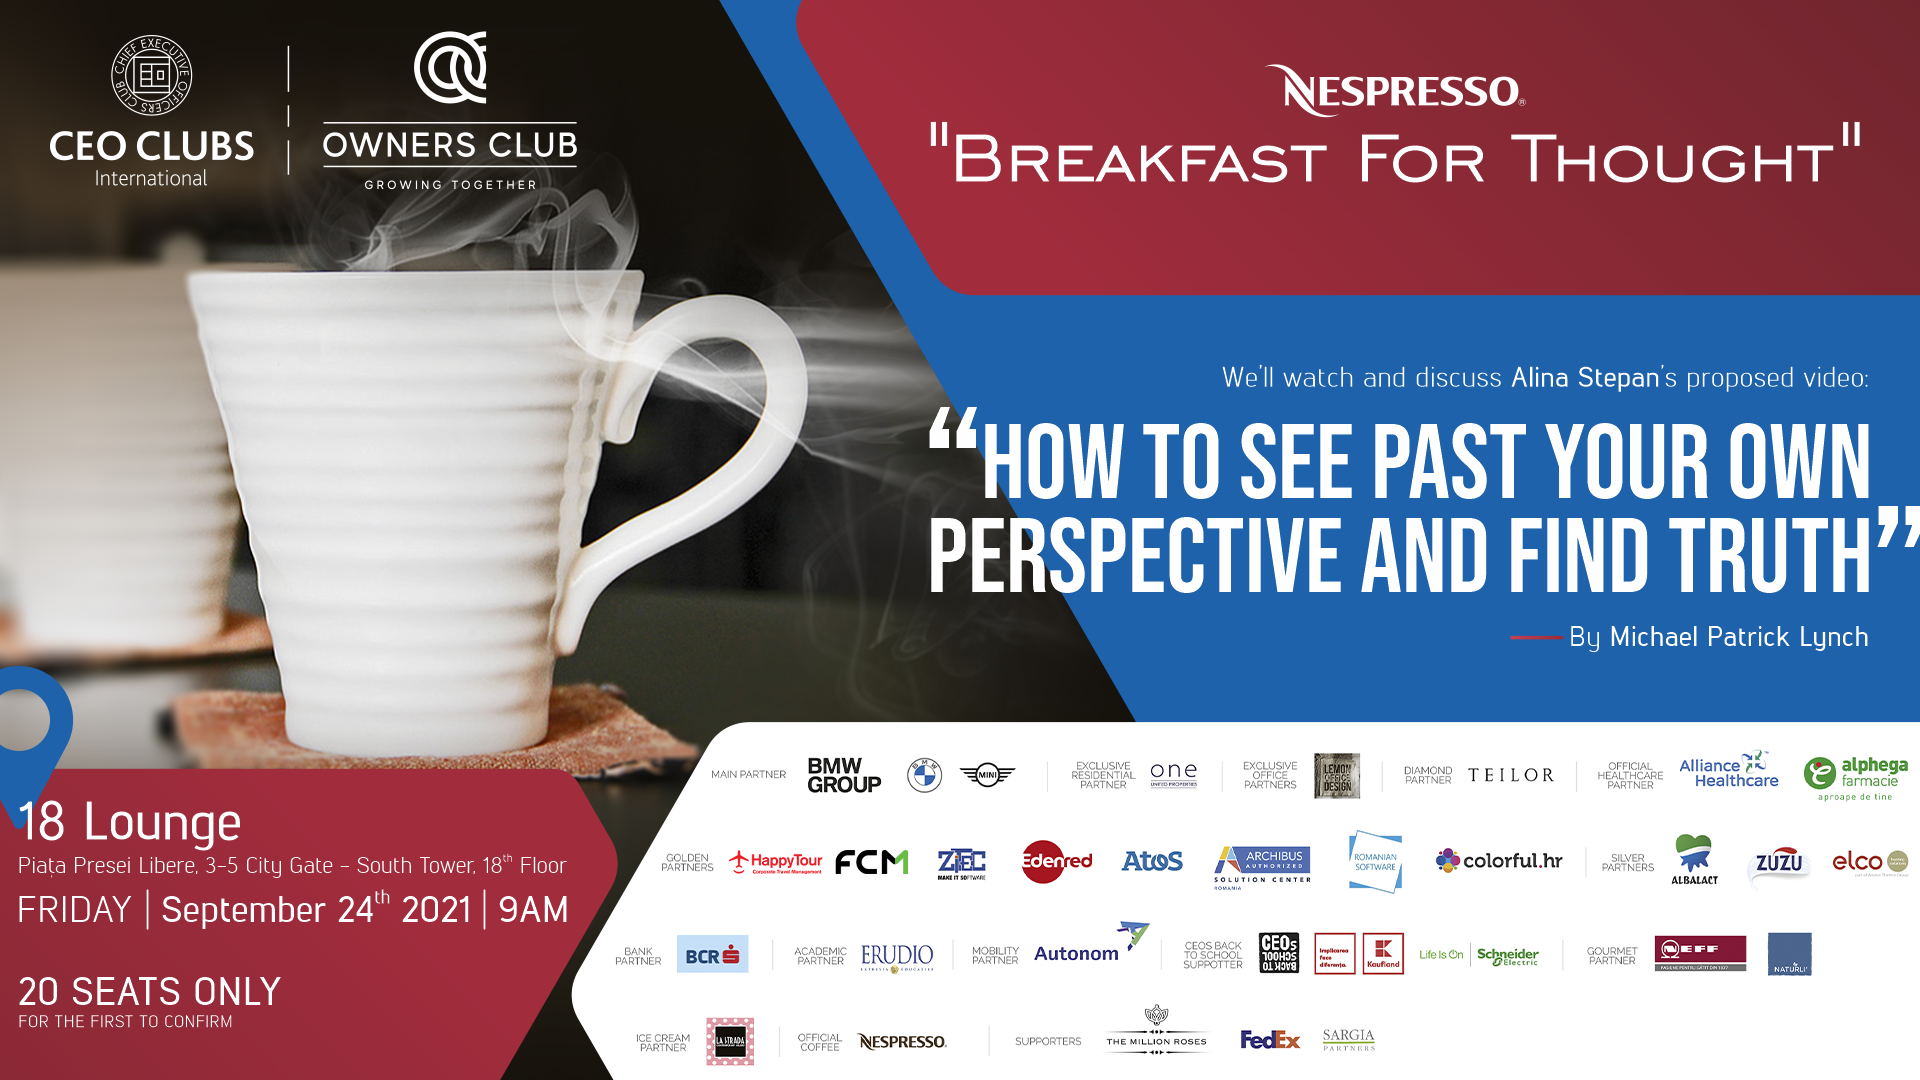 CEO Clubs & Owners Club Breakfast for Thought